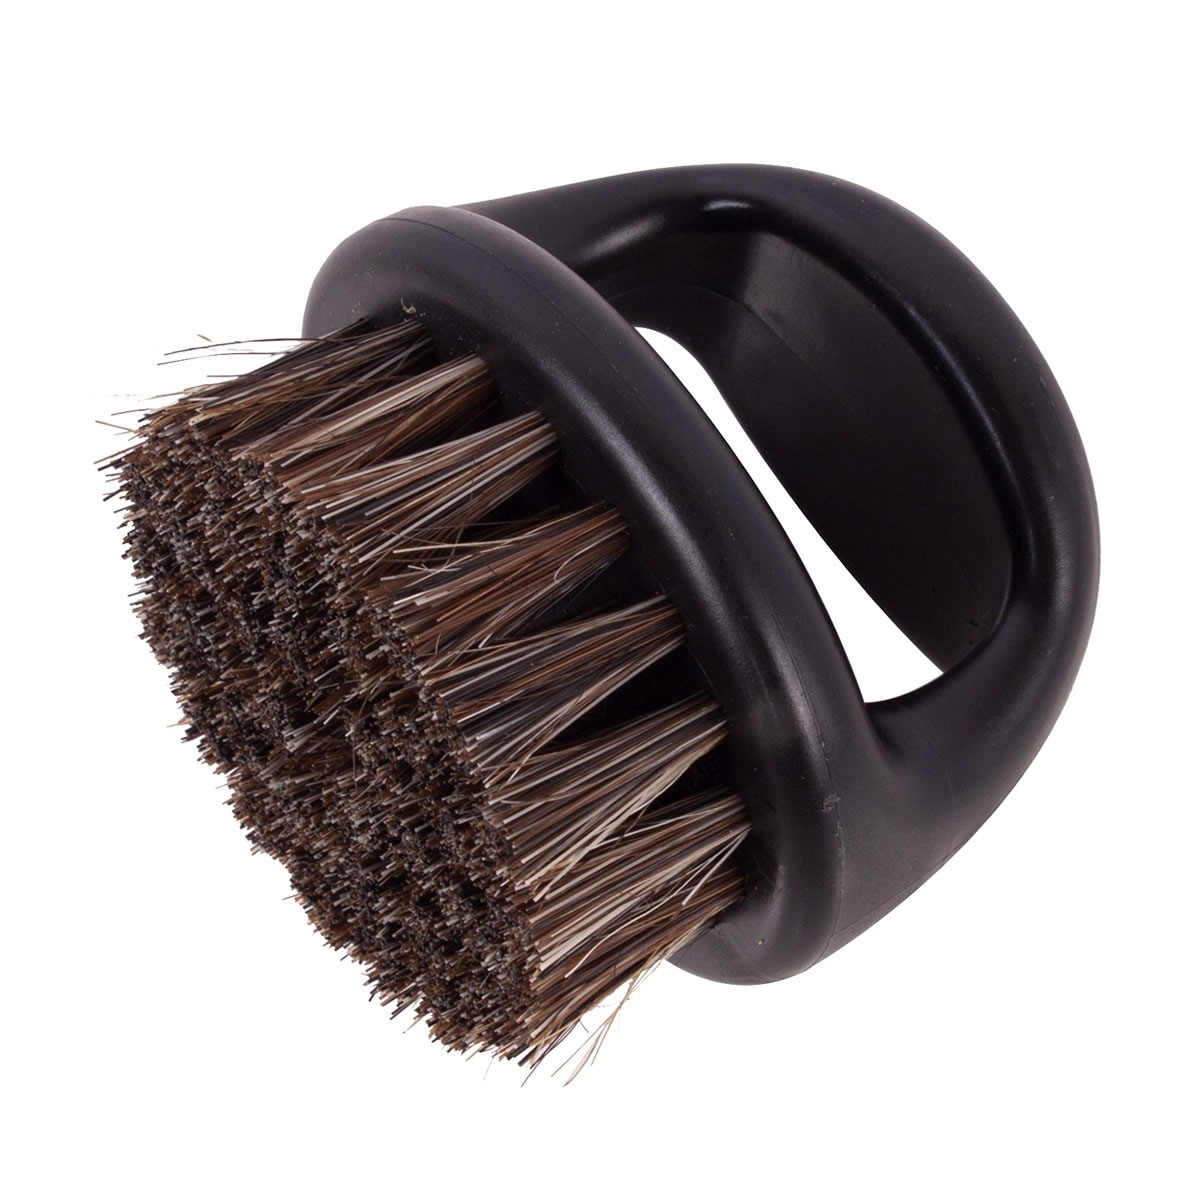 Barber Beard Brush for Men - Men's Beard Brush